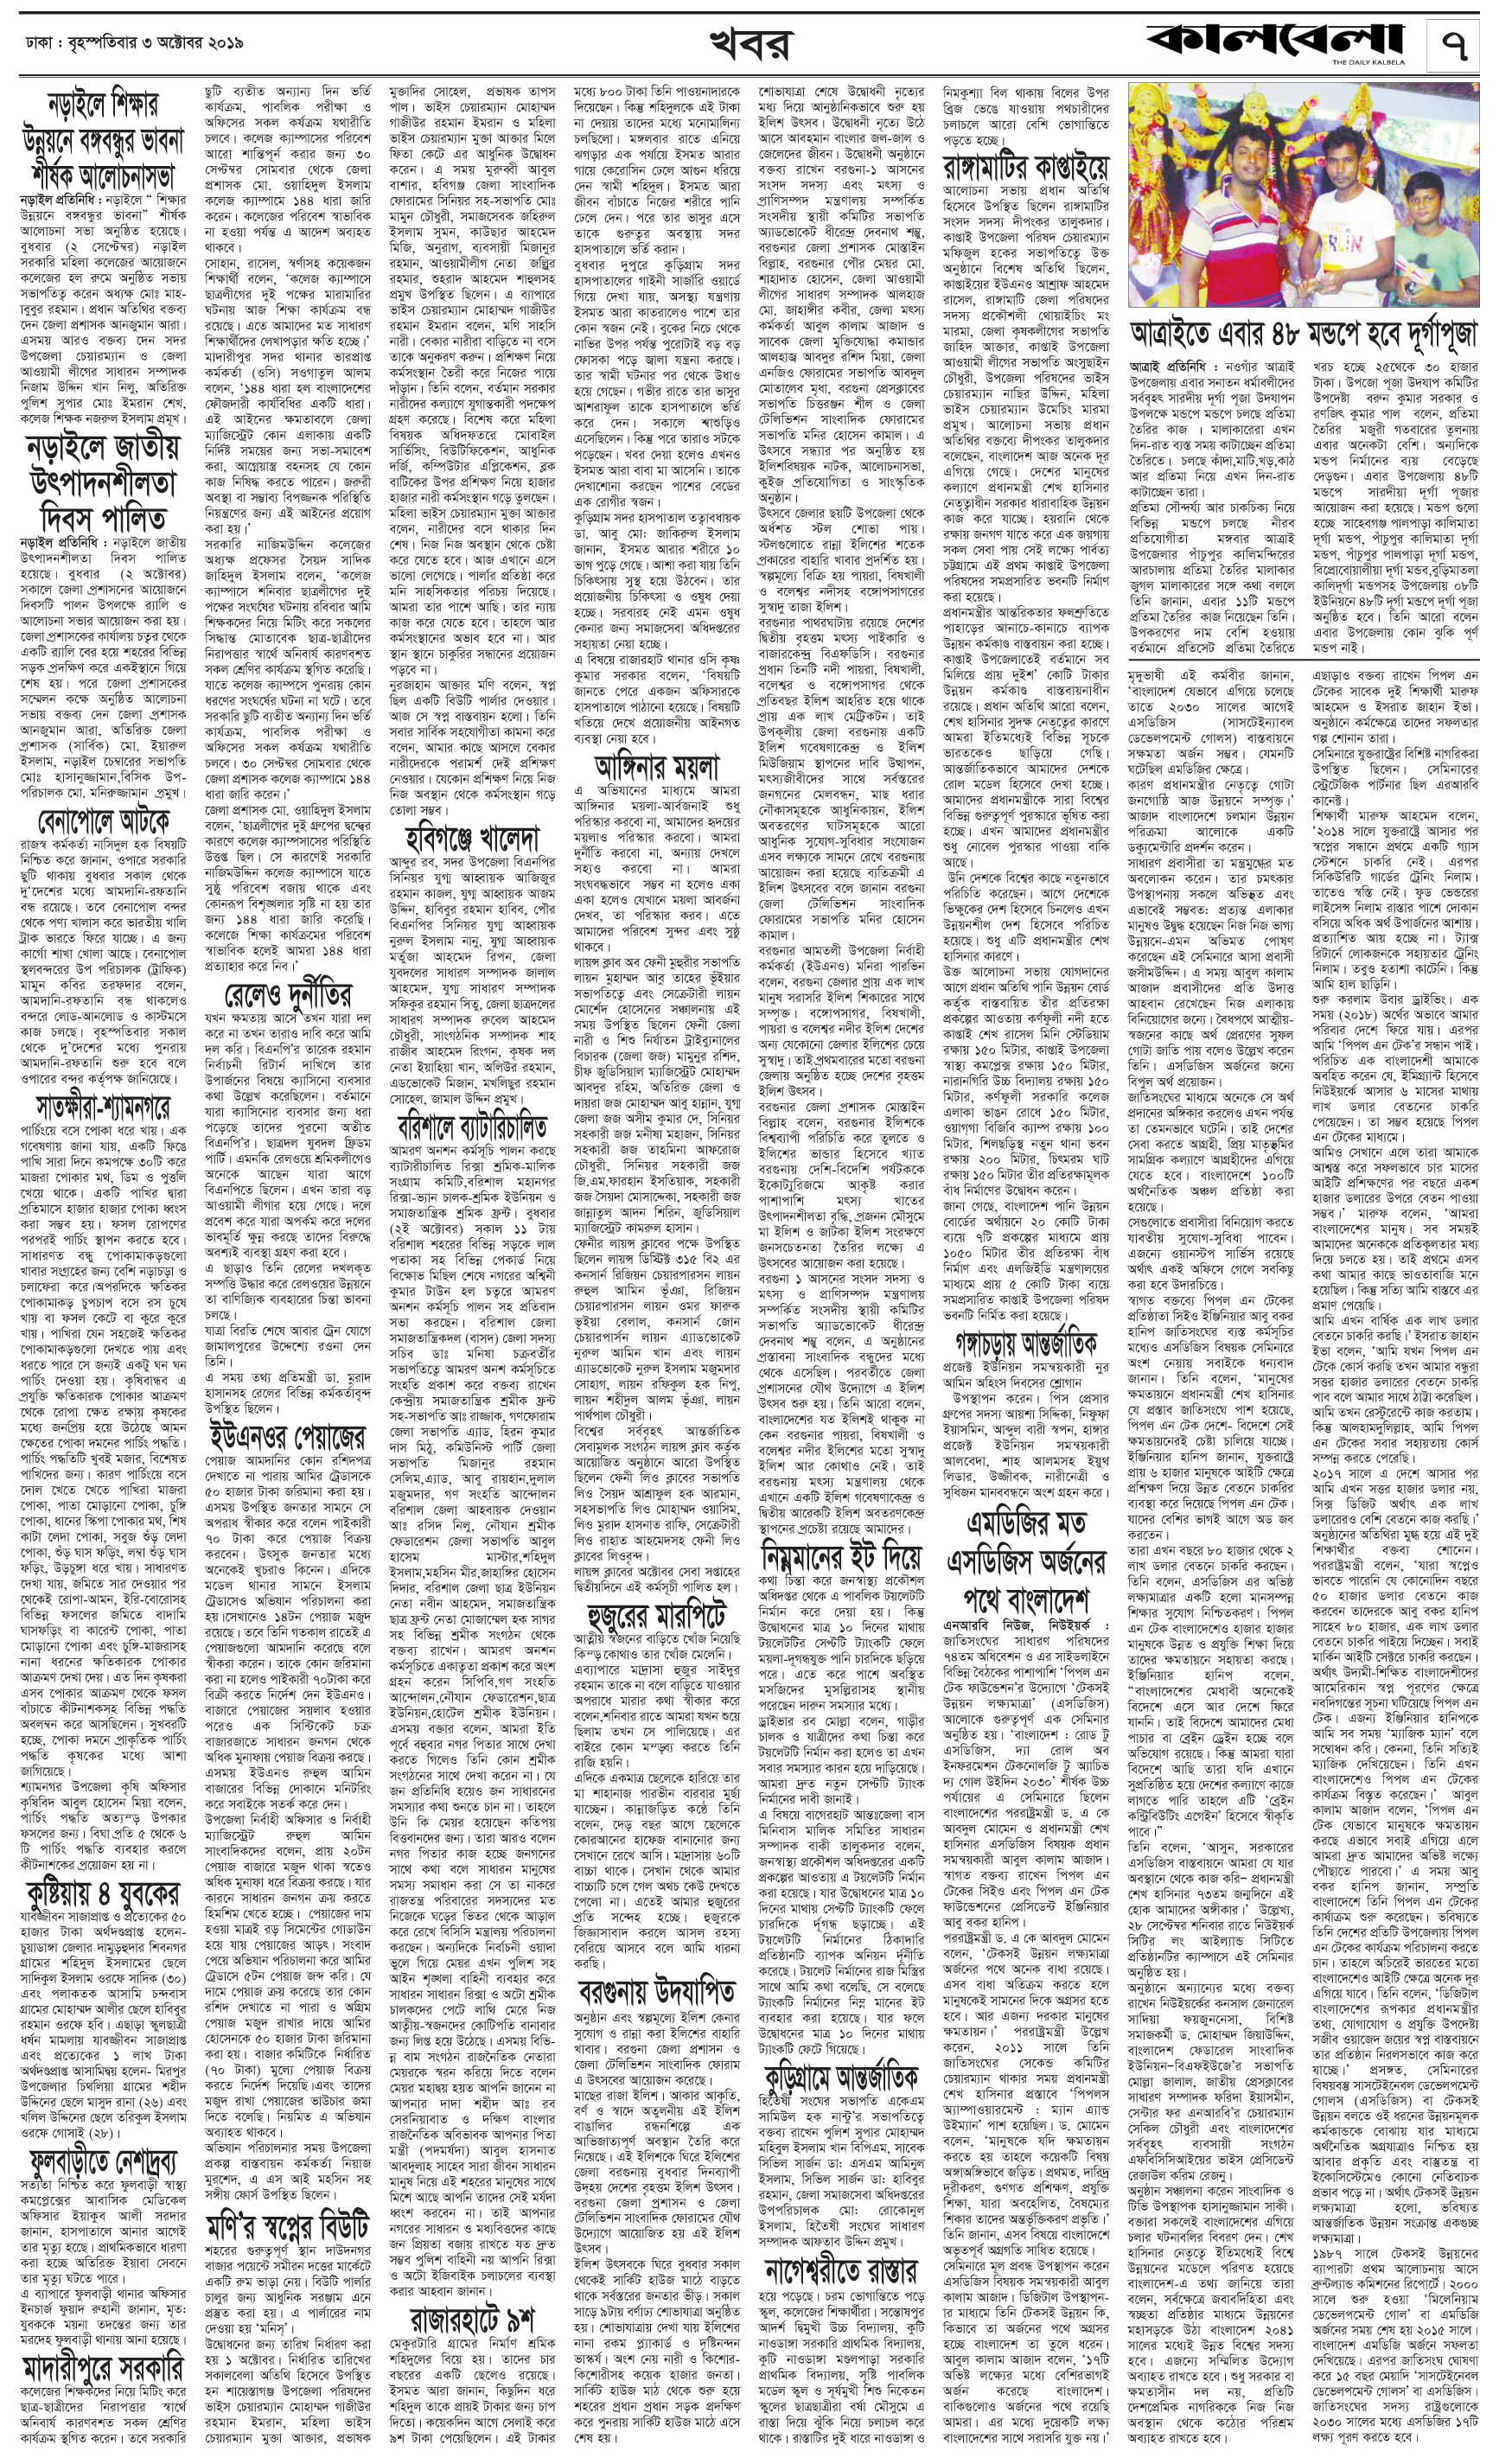 Page-7-(2-10-2019).qxd_Page